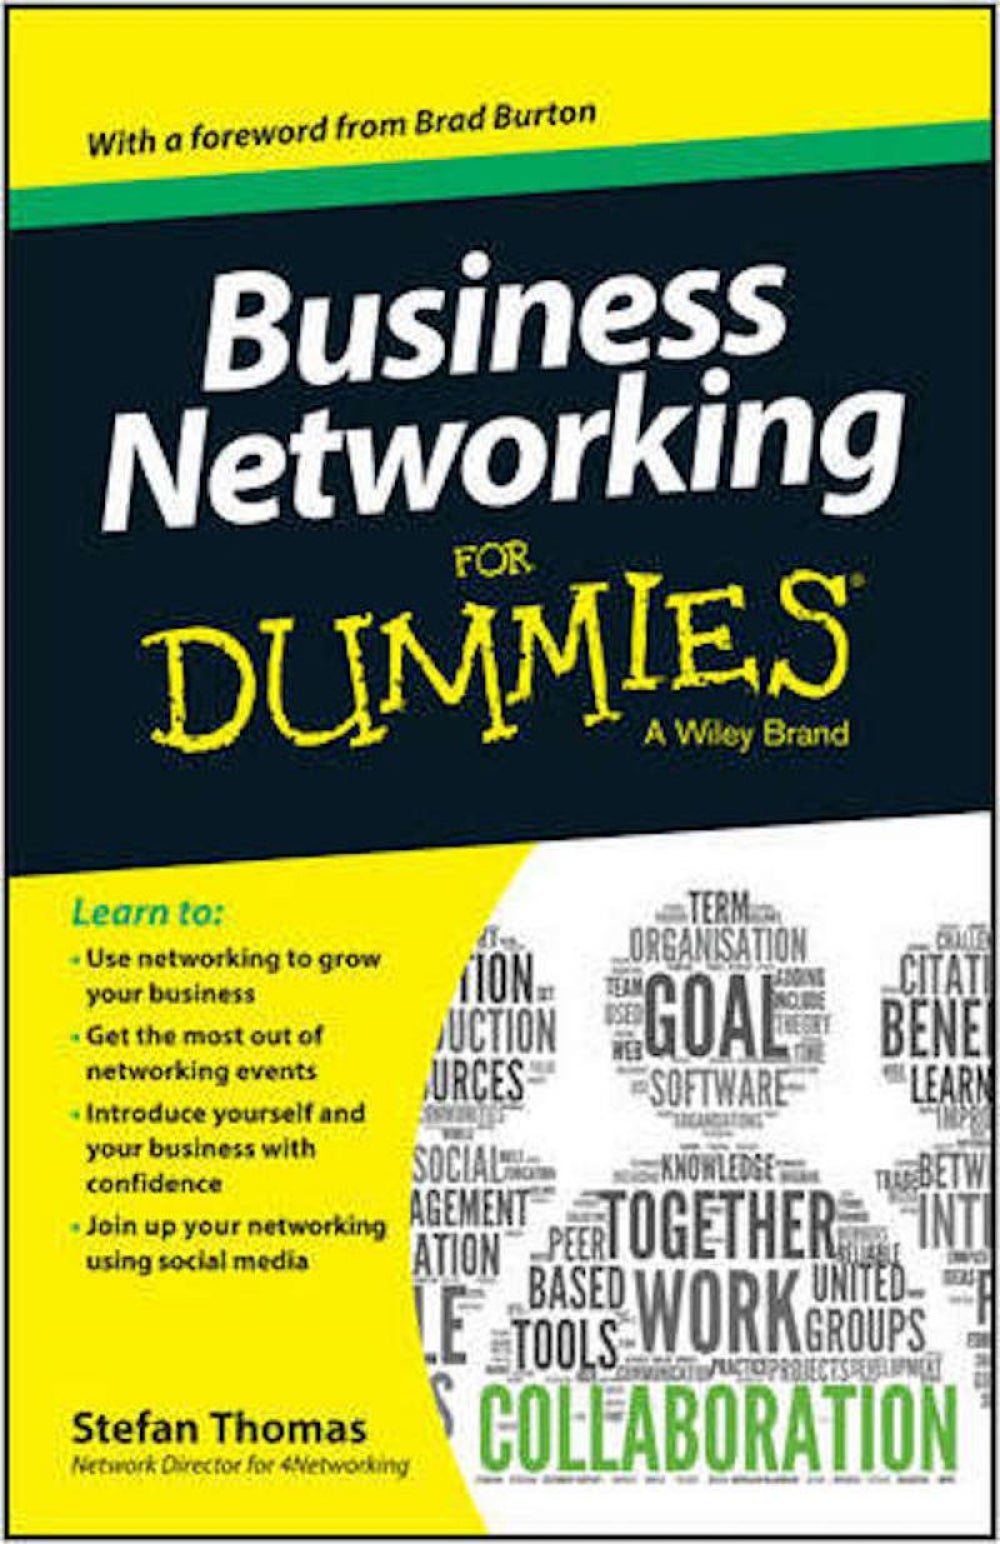 Business Networking For Dummies ($12 Value) FREE For a Limited Time